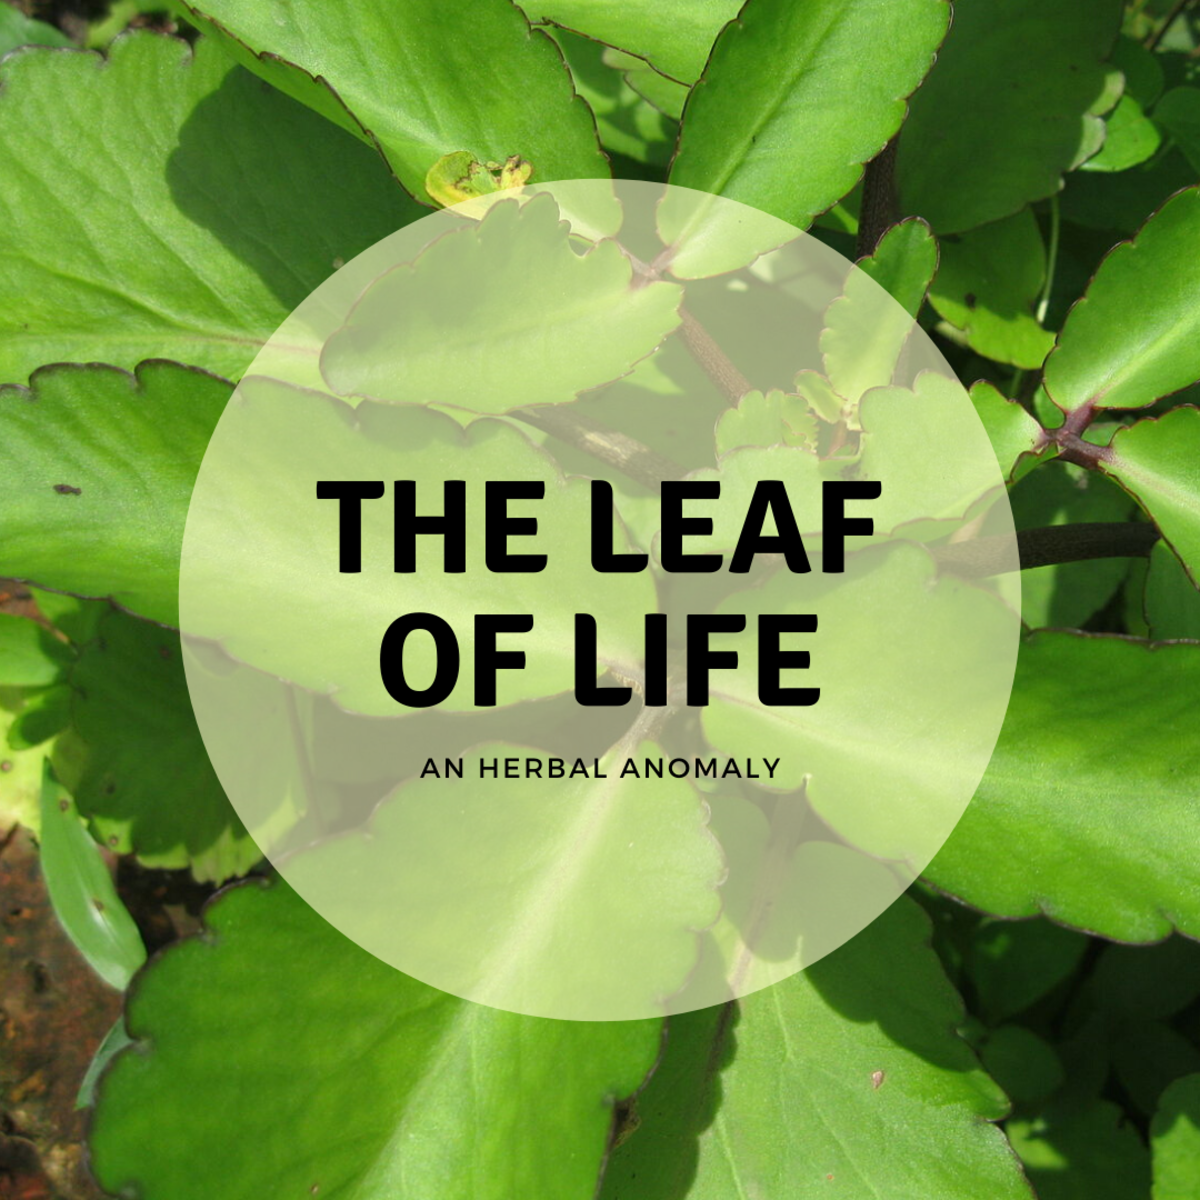 Leaf of Life: Where It Grows and How to Use It